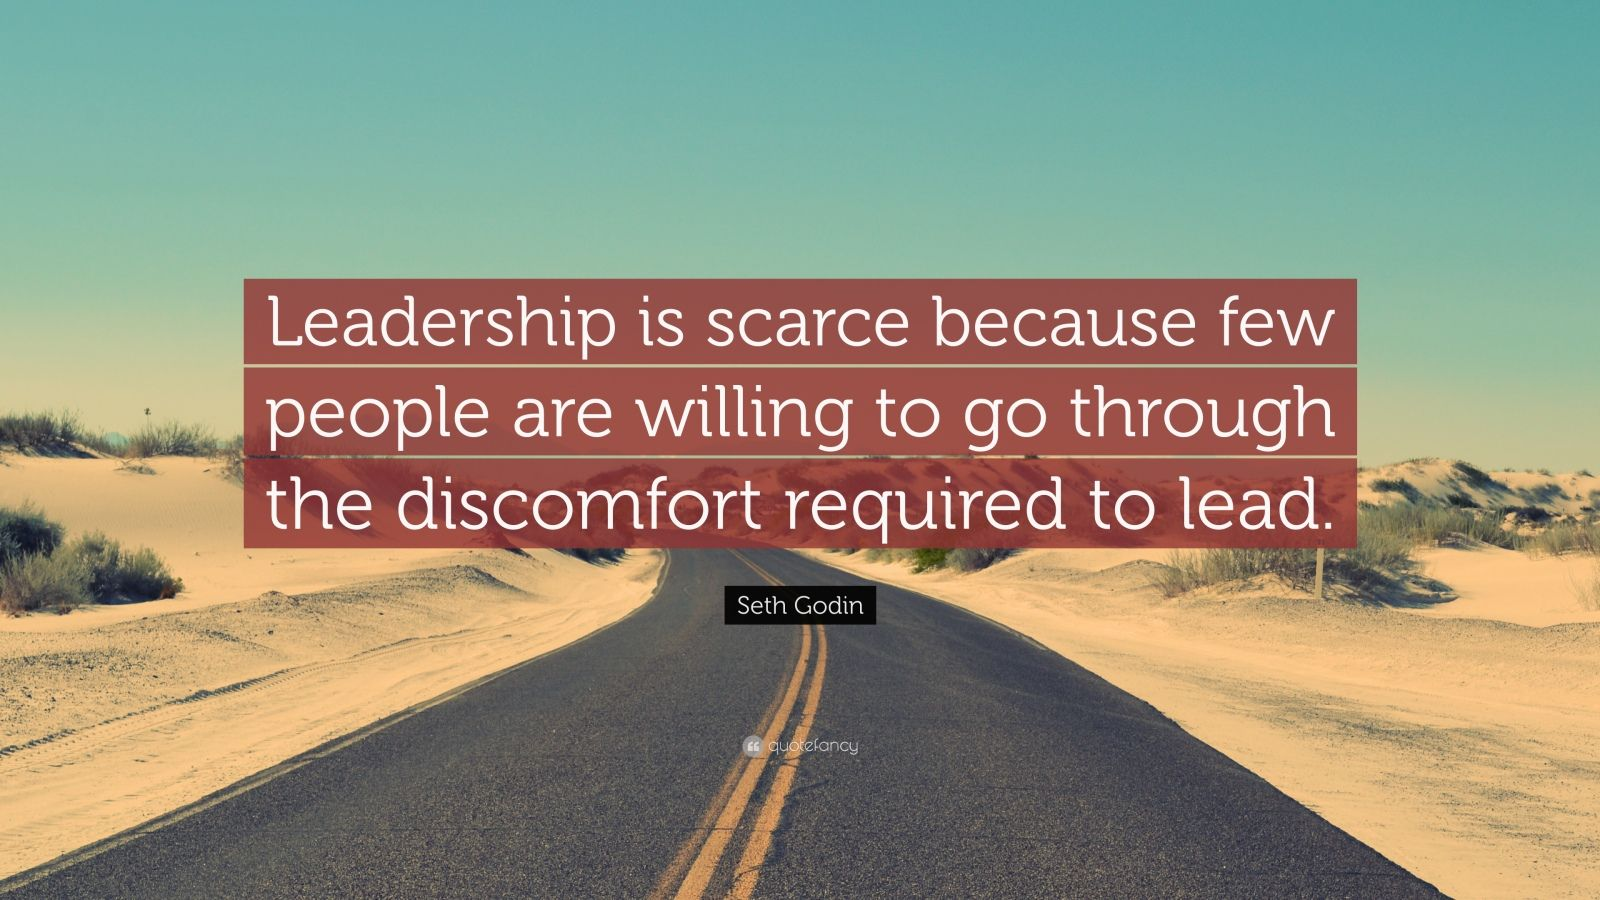 """Seth Godin Quote: """"Leadership is scarce because few people are willing to go through the discomfort required to lead."""""""